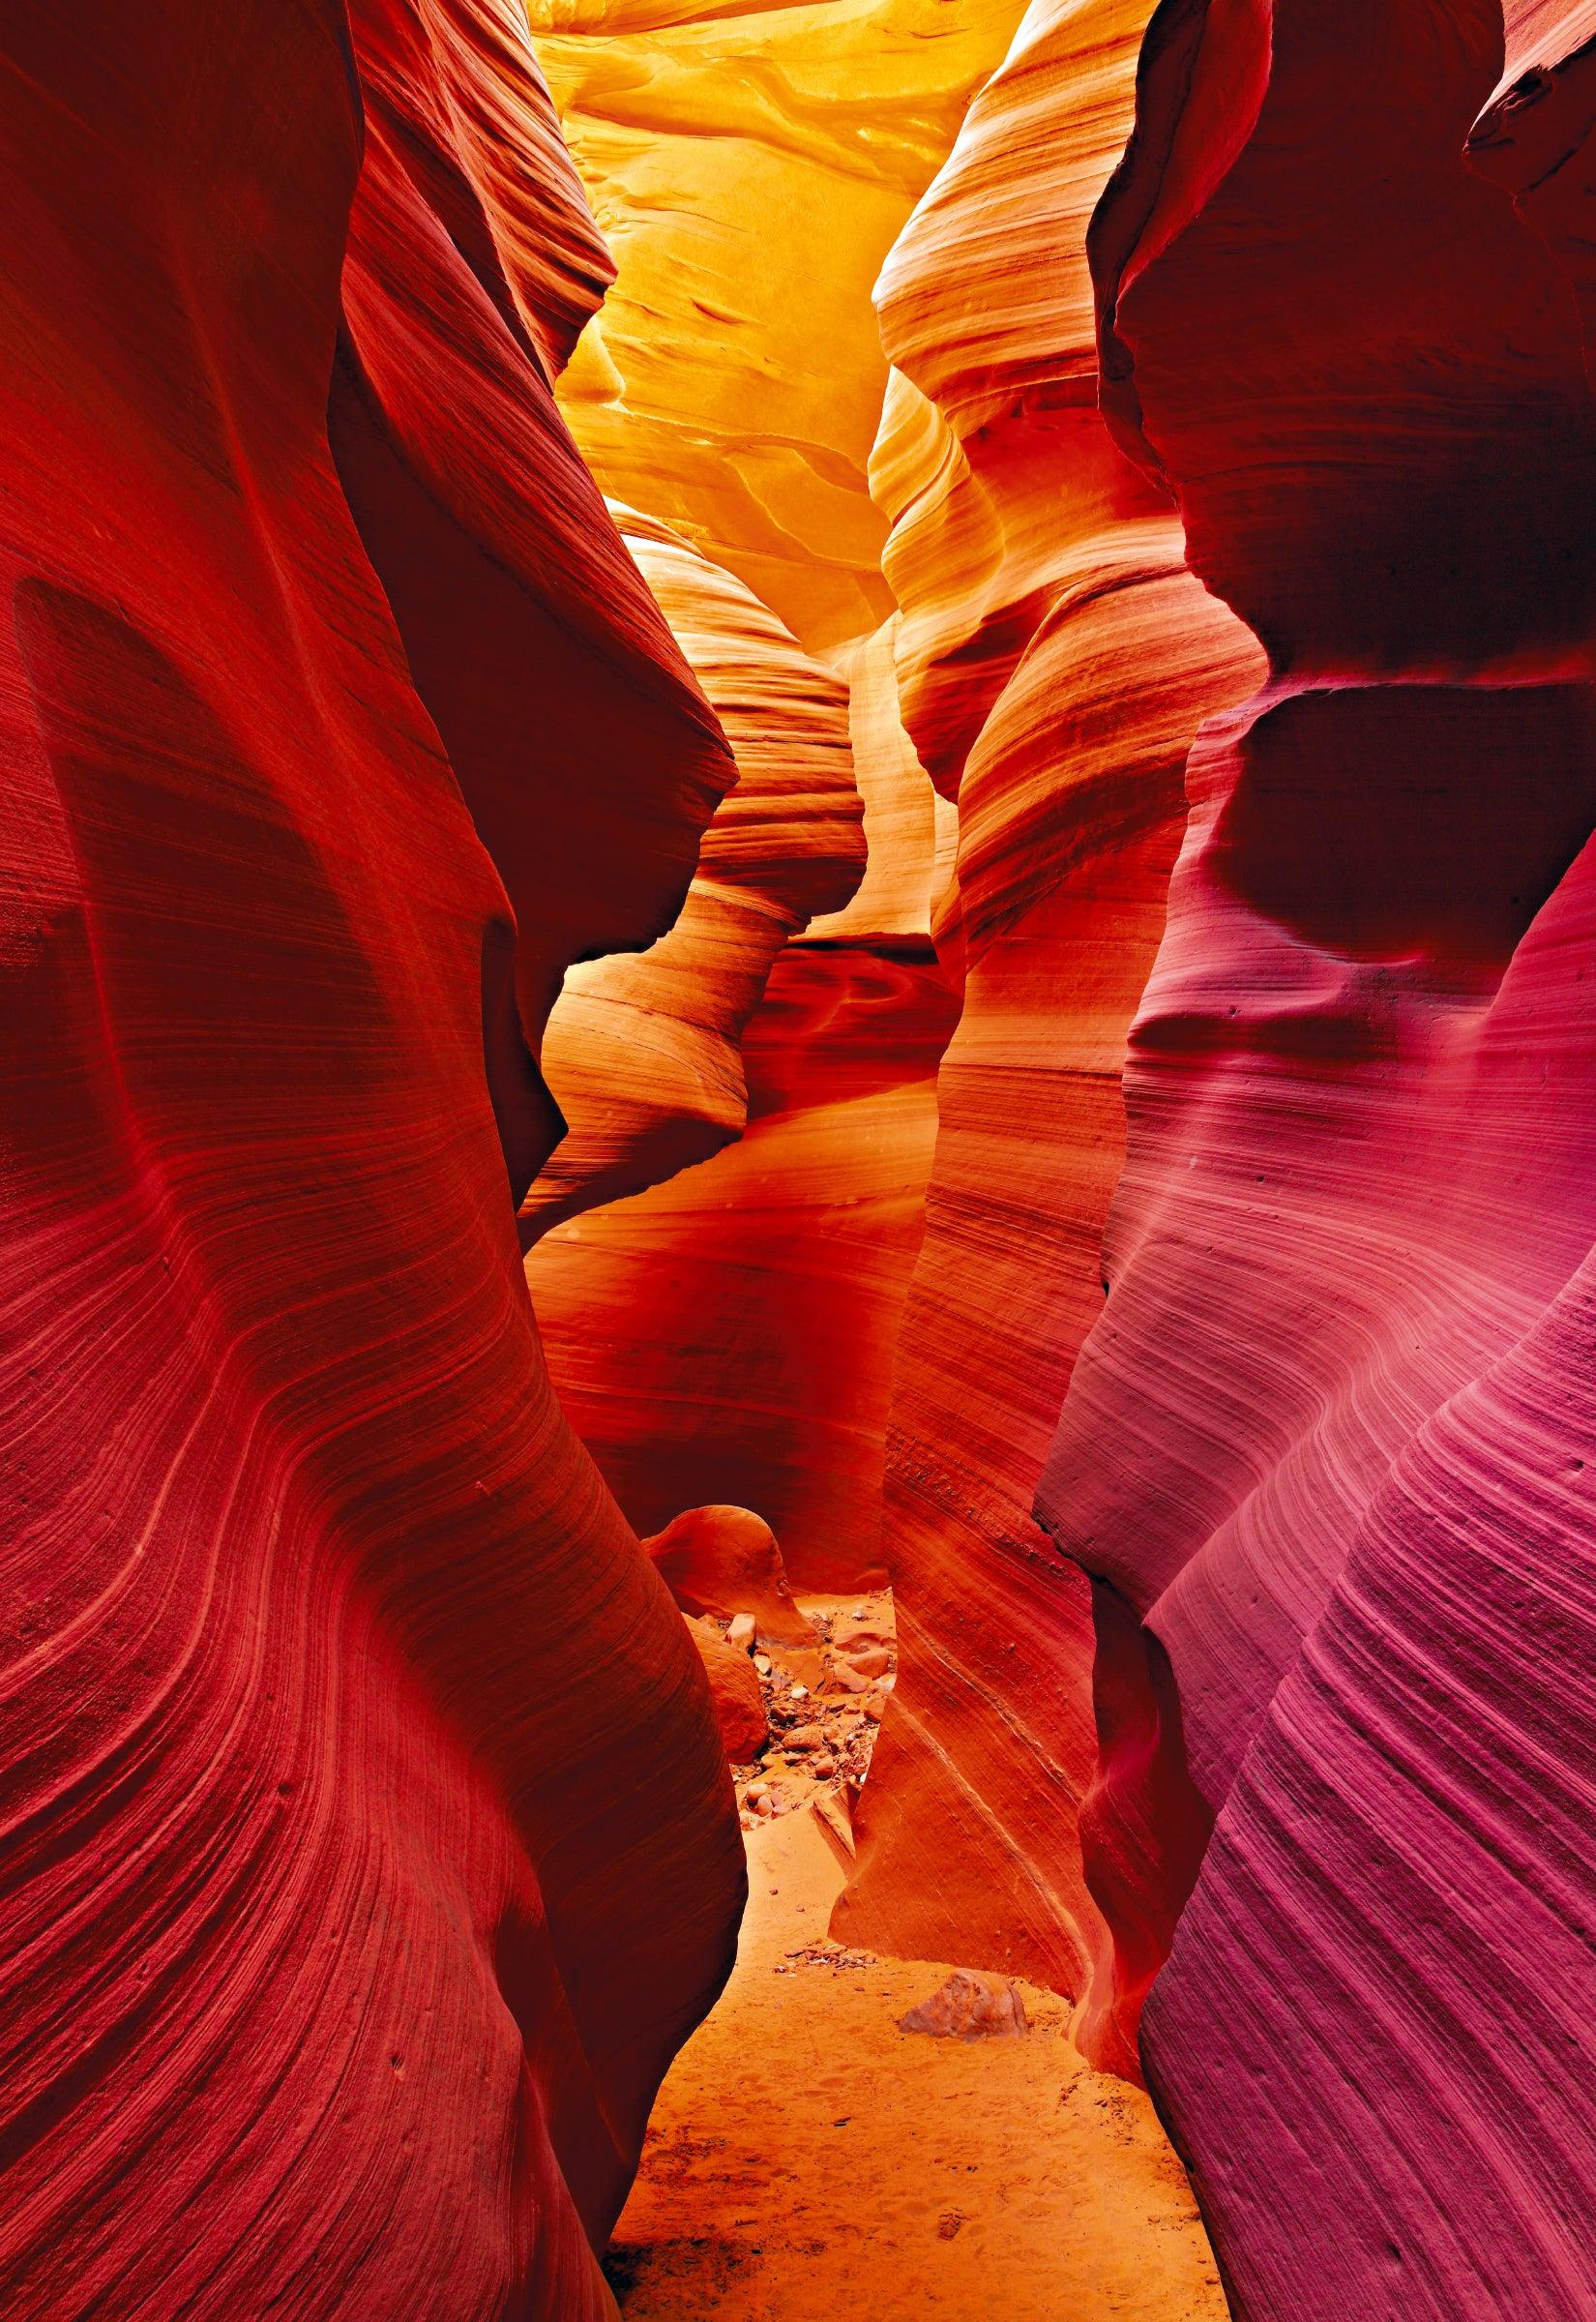 Sand path through the red orange and pink sandstone walls of the slot canyons in Antelope Canyon Arizona